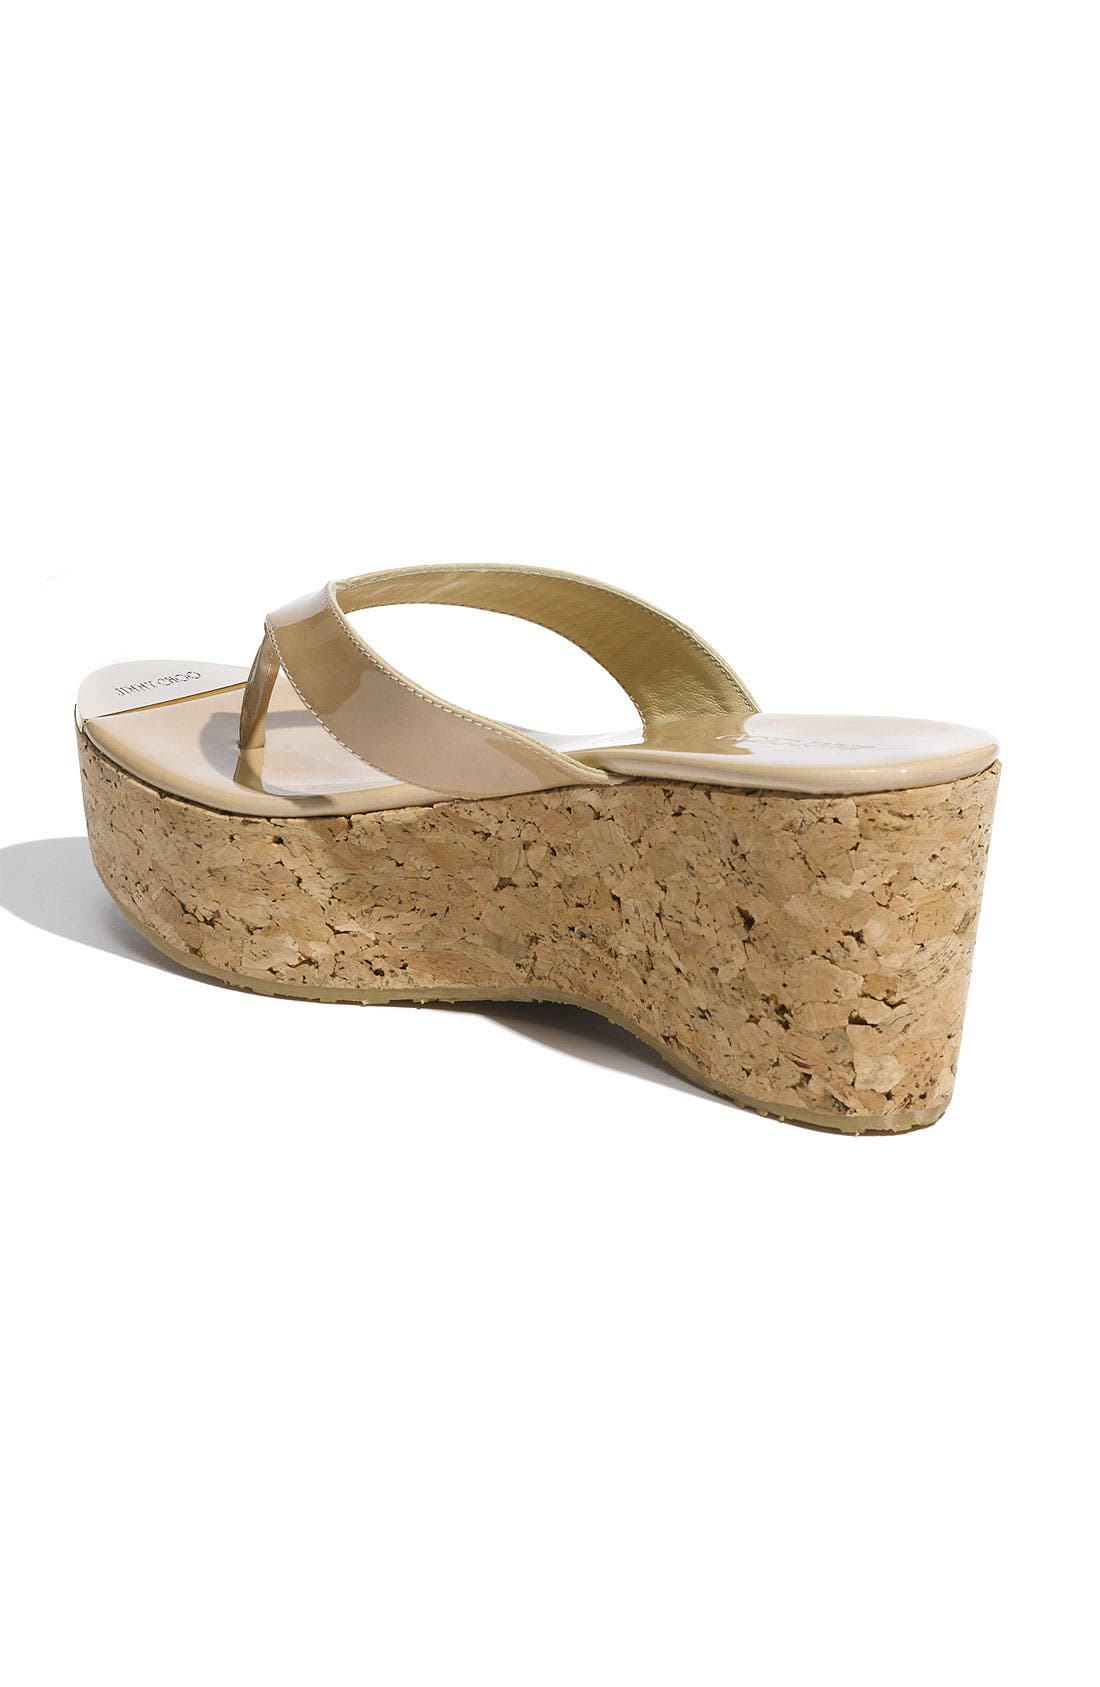 Alternate Image 2  - Jimmy Choo 'Pathos Pat' Cork Wedge Sandal